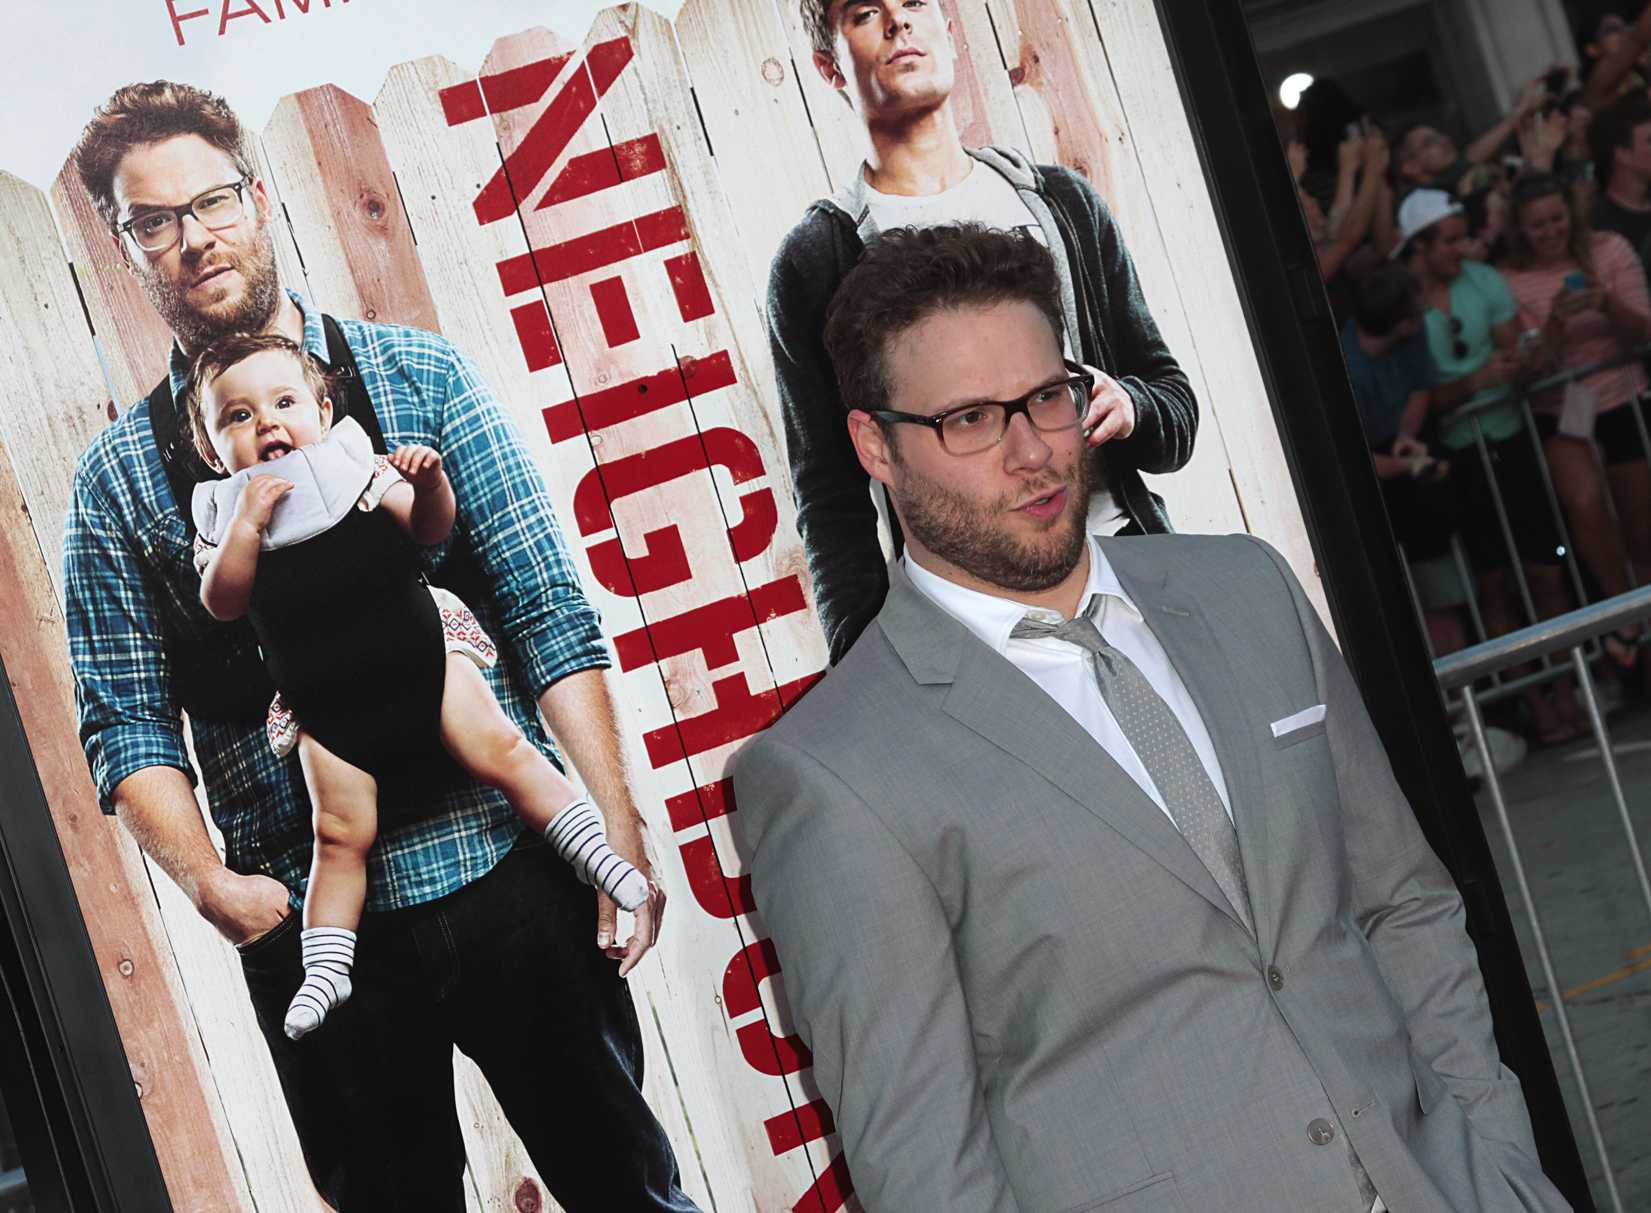 Seth Rogen attends the world premiere of his movie Neighbors in Los Angeles on April 28, 2014